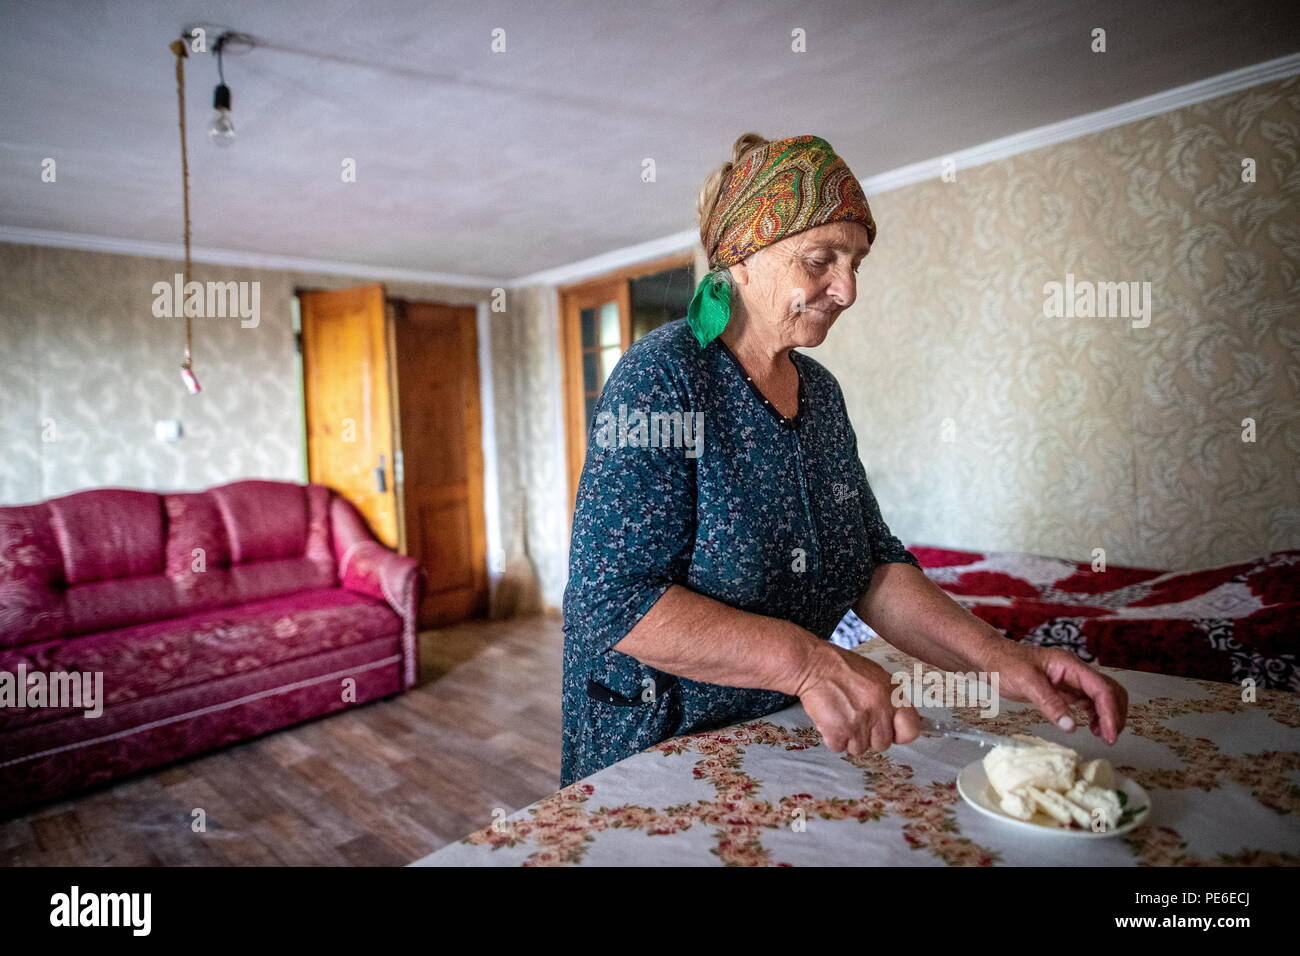 South Ossetia. 11th Aug, 2018. SOUTH OSSETIA - AUGUST 11, 2018: Margarita Madzigova, 63, cuts home cheese in the village of Khetagurovo, Tskhinvali District, South Ossetia; Margarita and her husband Alikhan have been running a farm since their house was restored after the 2008 South Ossetian-Georgian military conflict. Sergei Bobylev/TASS Credit: ITAR-TASS News Agency/Alamy Live News - Stock Image